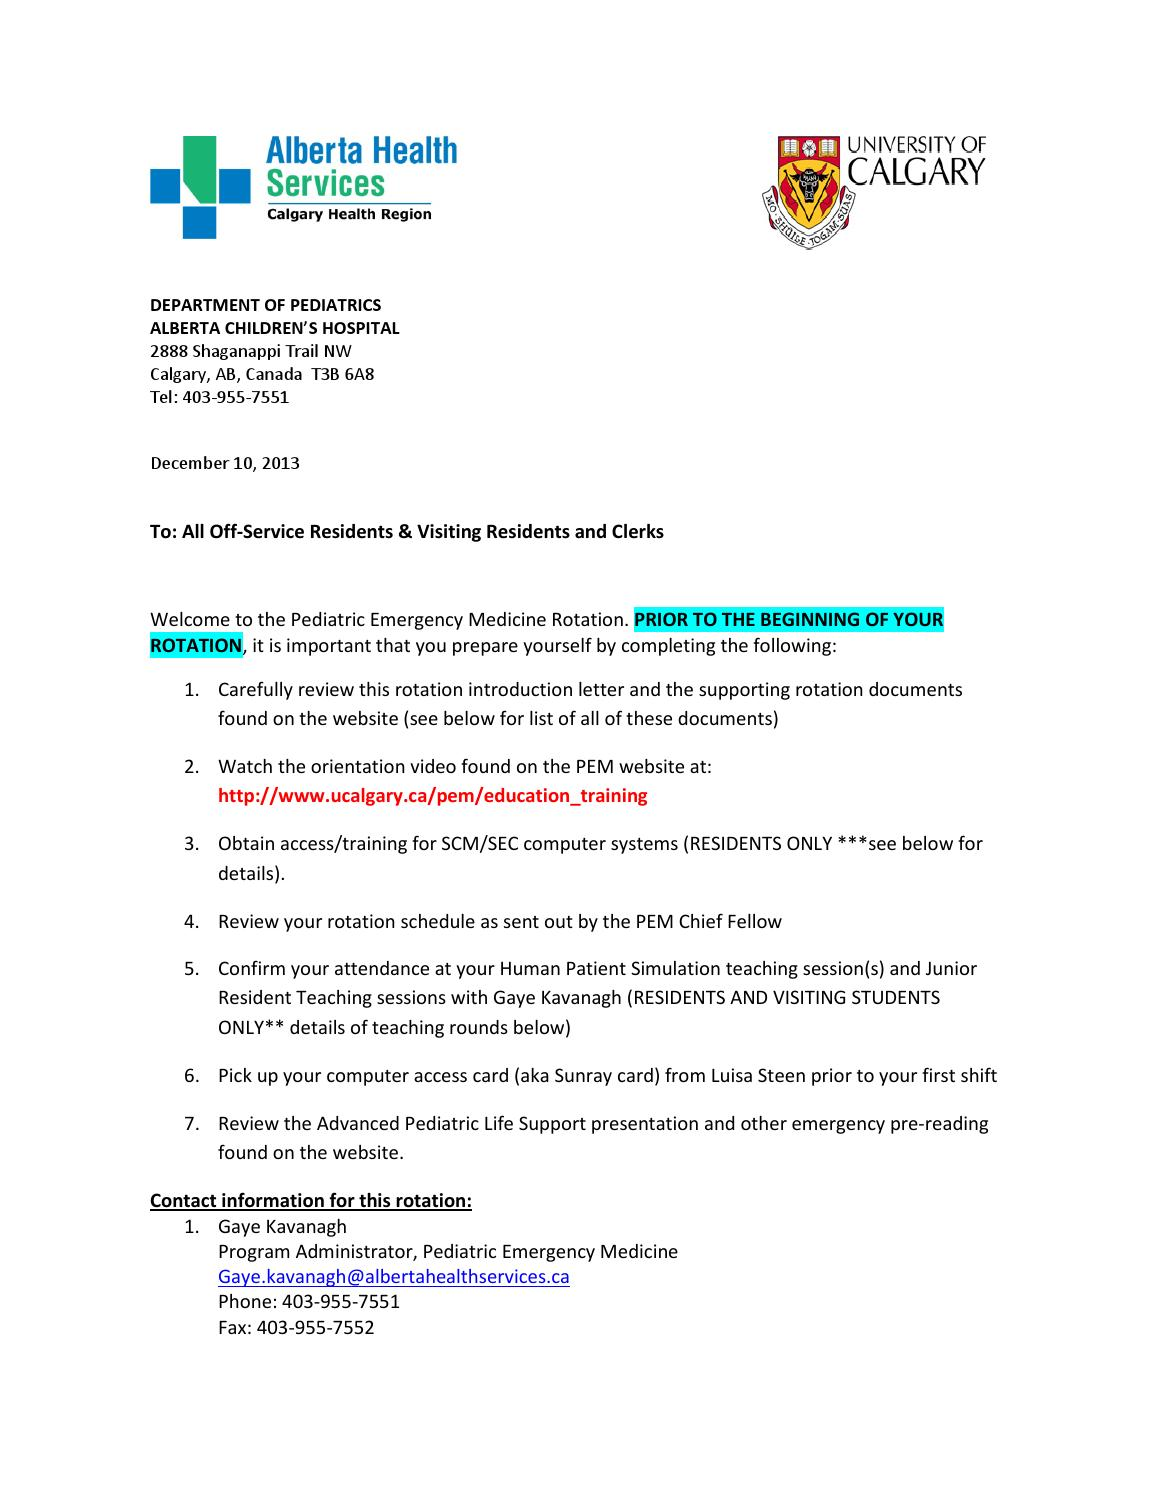 Orientation letter by Department of Paediatrics - University